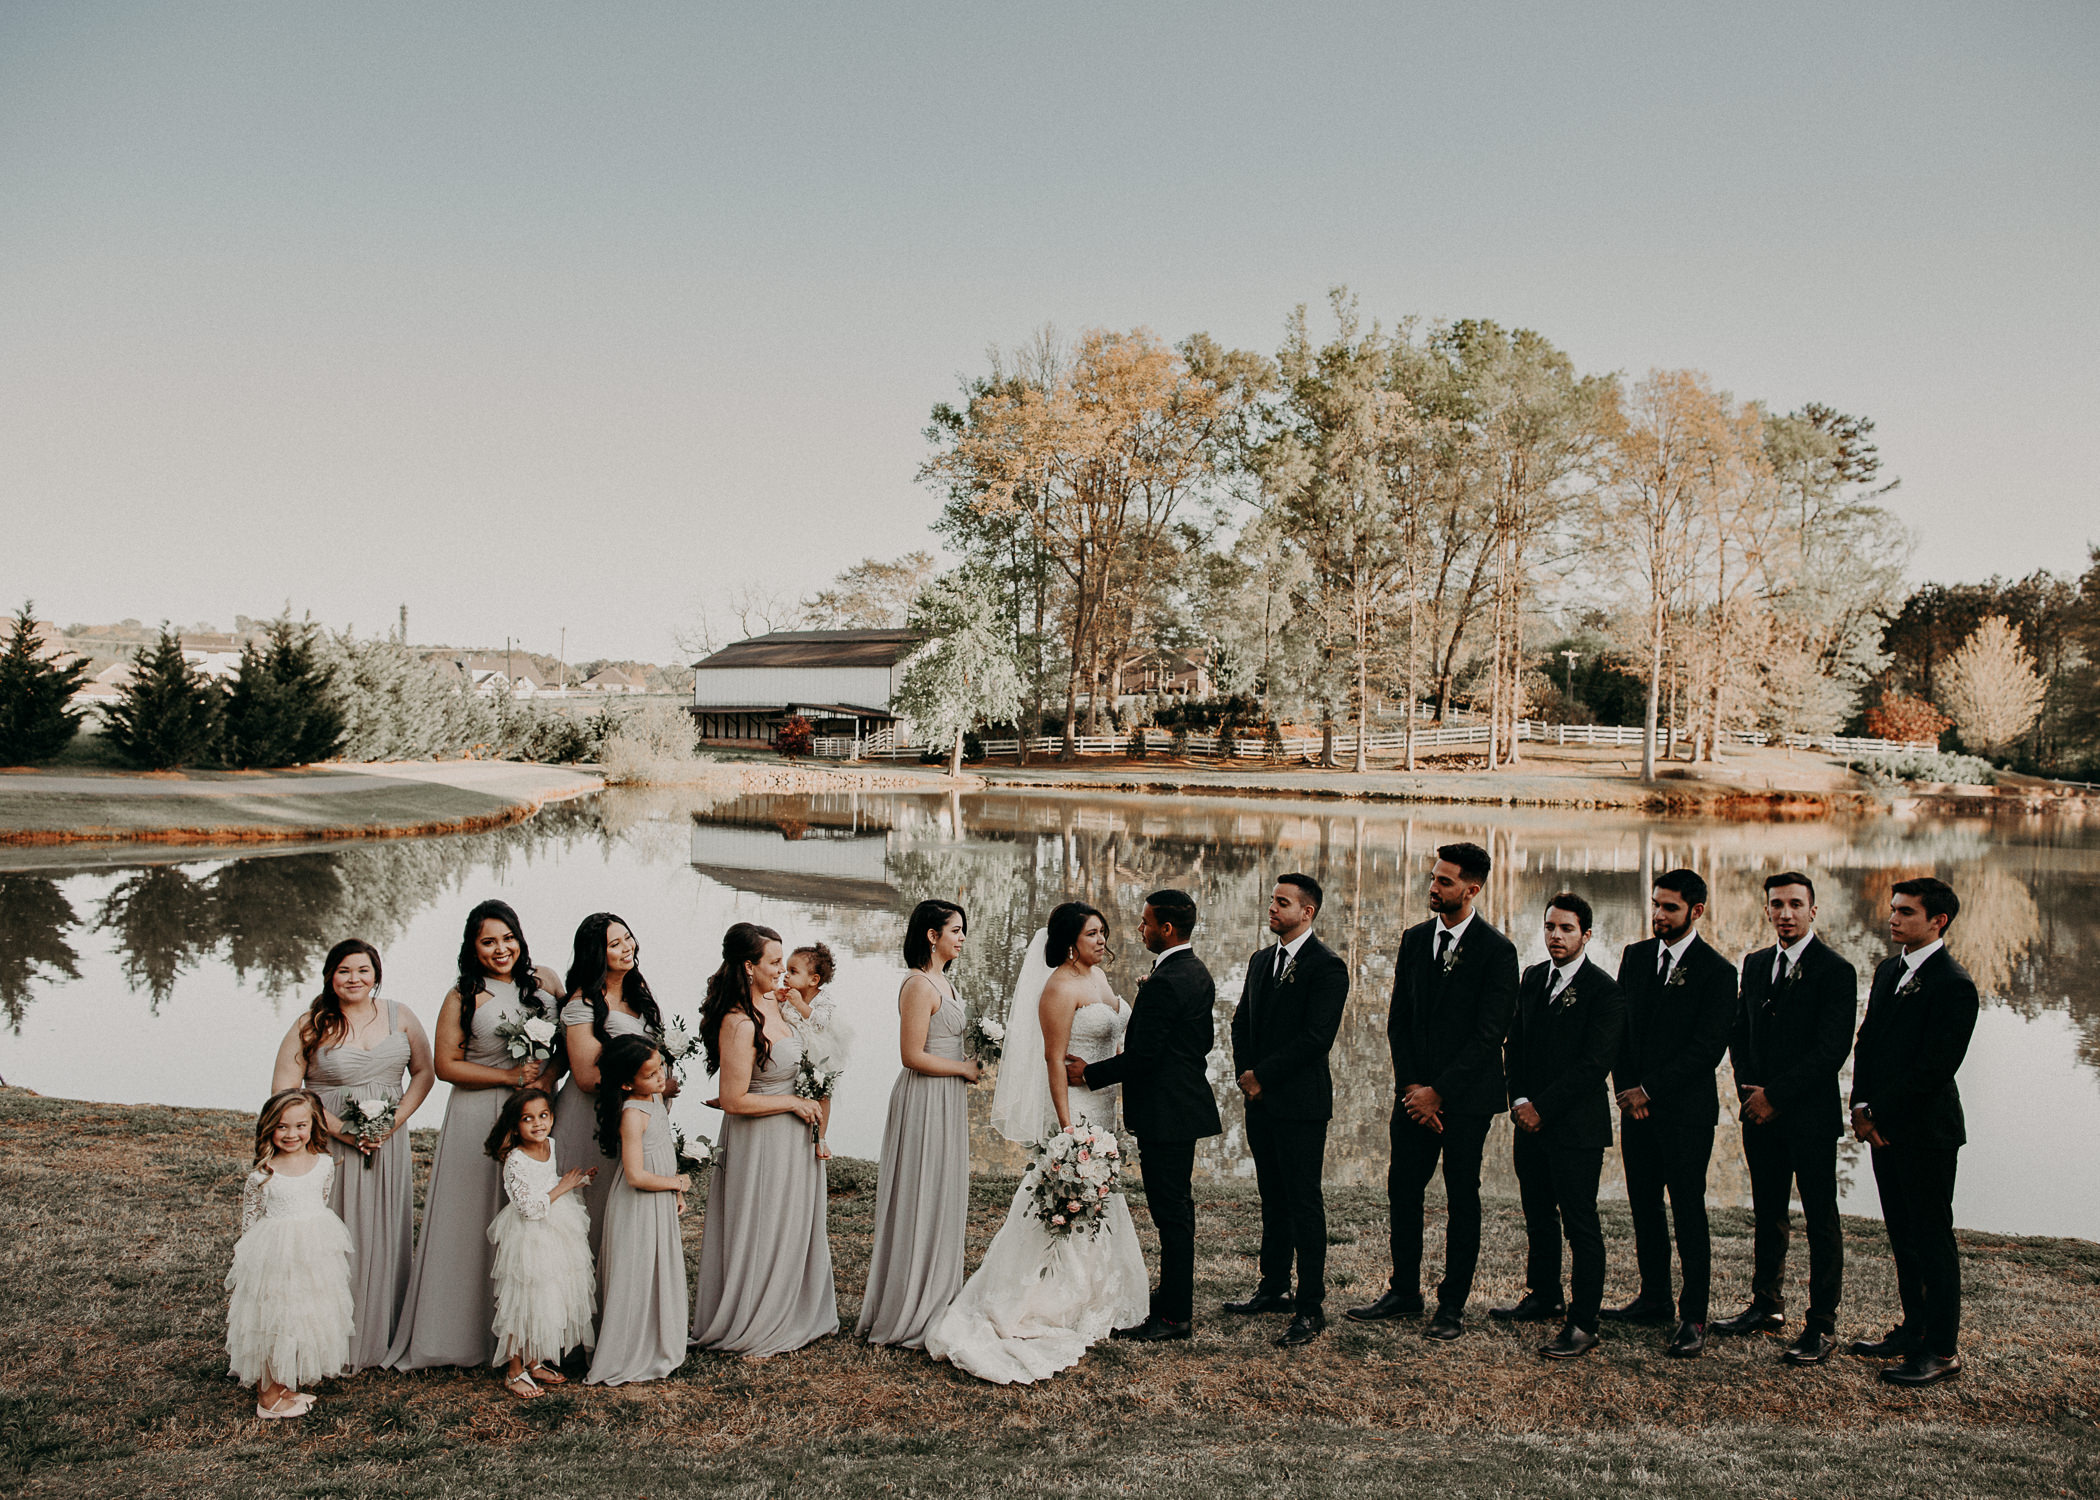 44  - Little River Farms - first look - Atlanta - Wedding Venue - Atlanta Wedding Photographer - Georgia weddings details wedding dress shoes gather groom bridal party .jpg